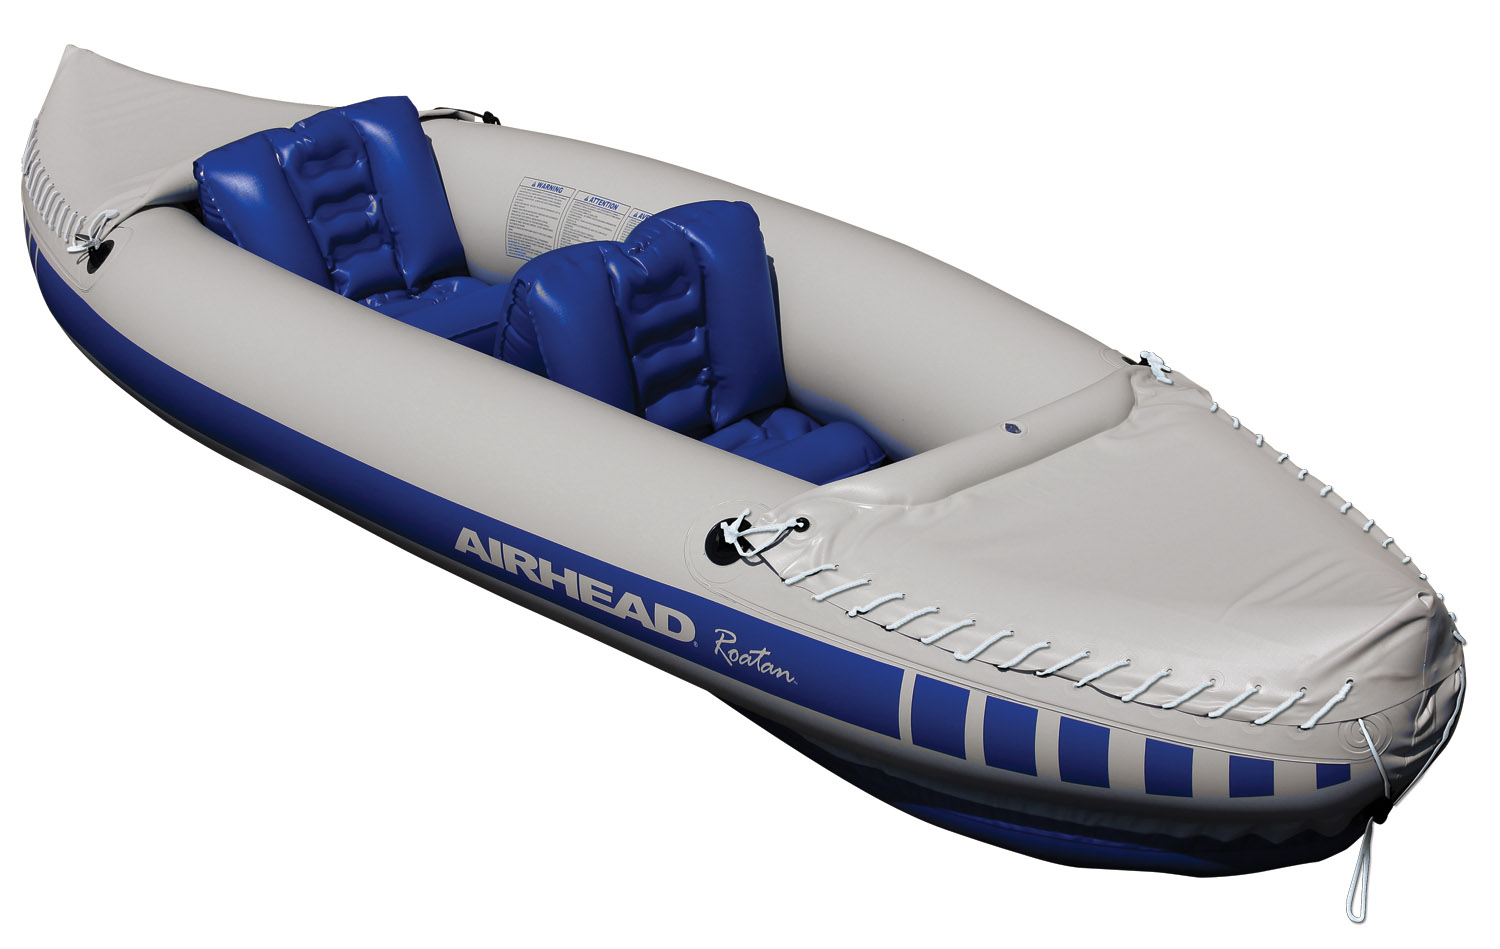 Airhead Roatan Double Rider River Lake Water Lightweight Travel Kayak | AHTK-5 by AIRHEAD SPORTS GROUP